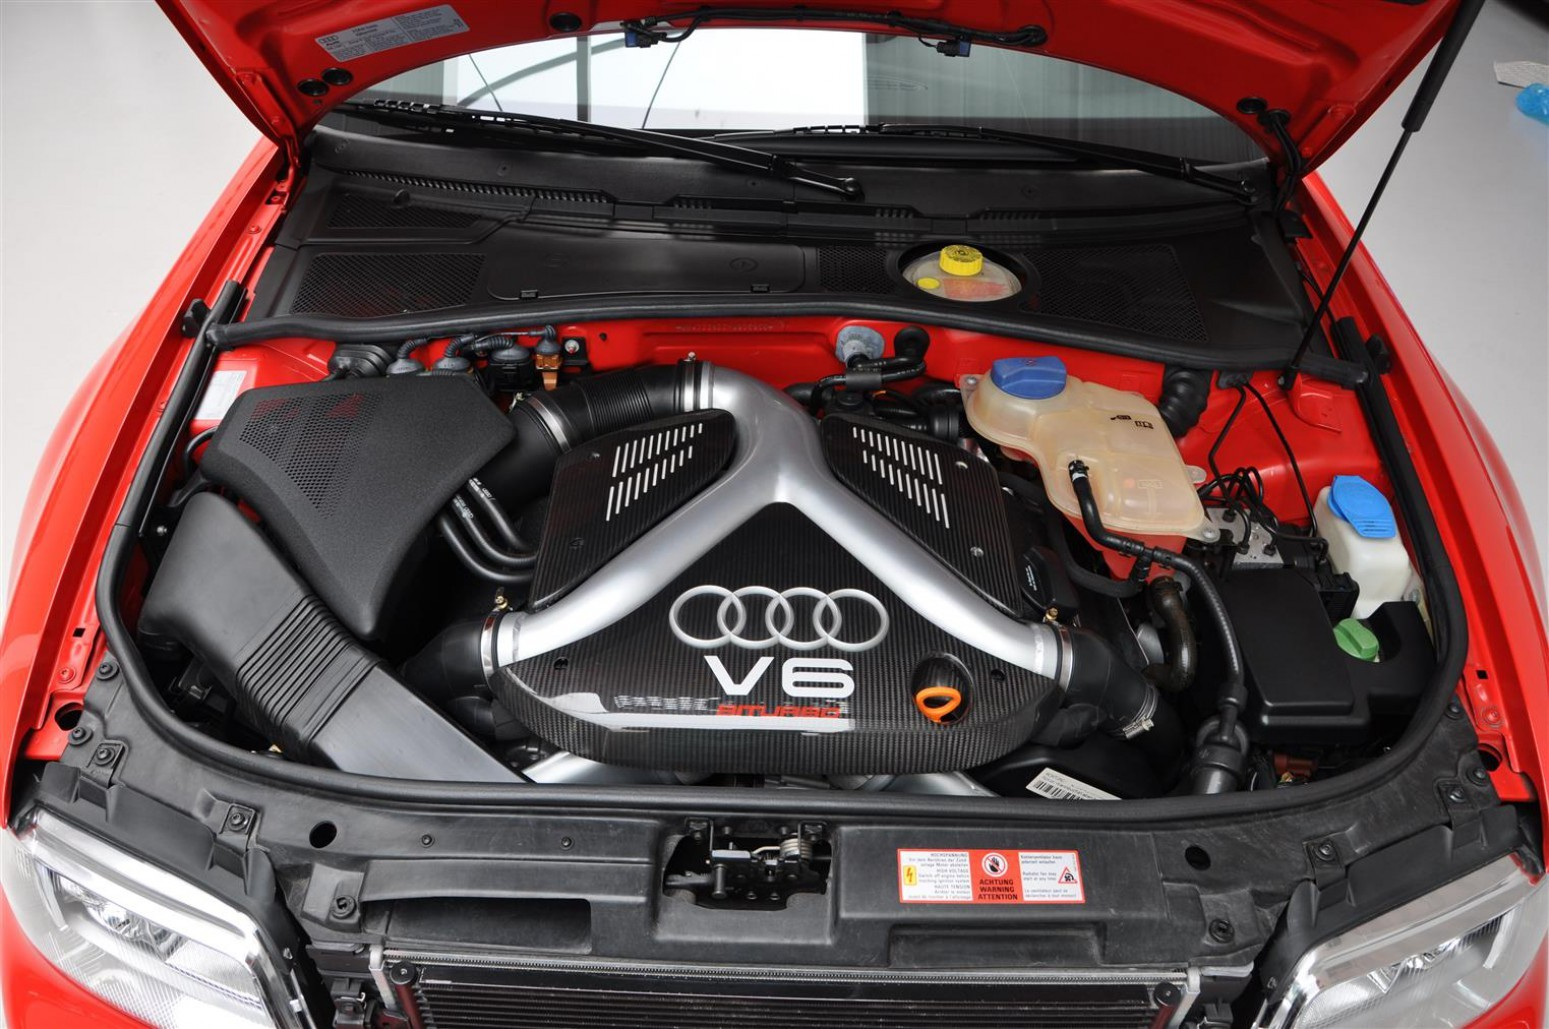 Audi RS4 B5 Avant With 188 KM On the Clock Listed for €99,500 - autoevolution